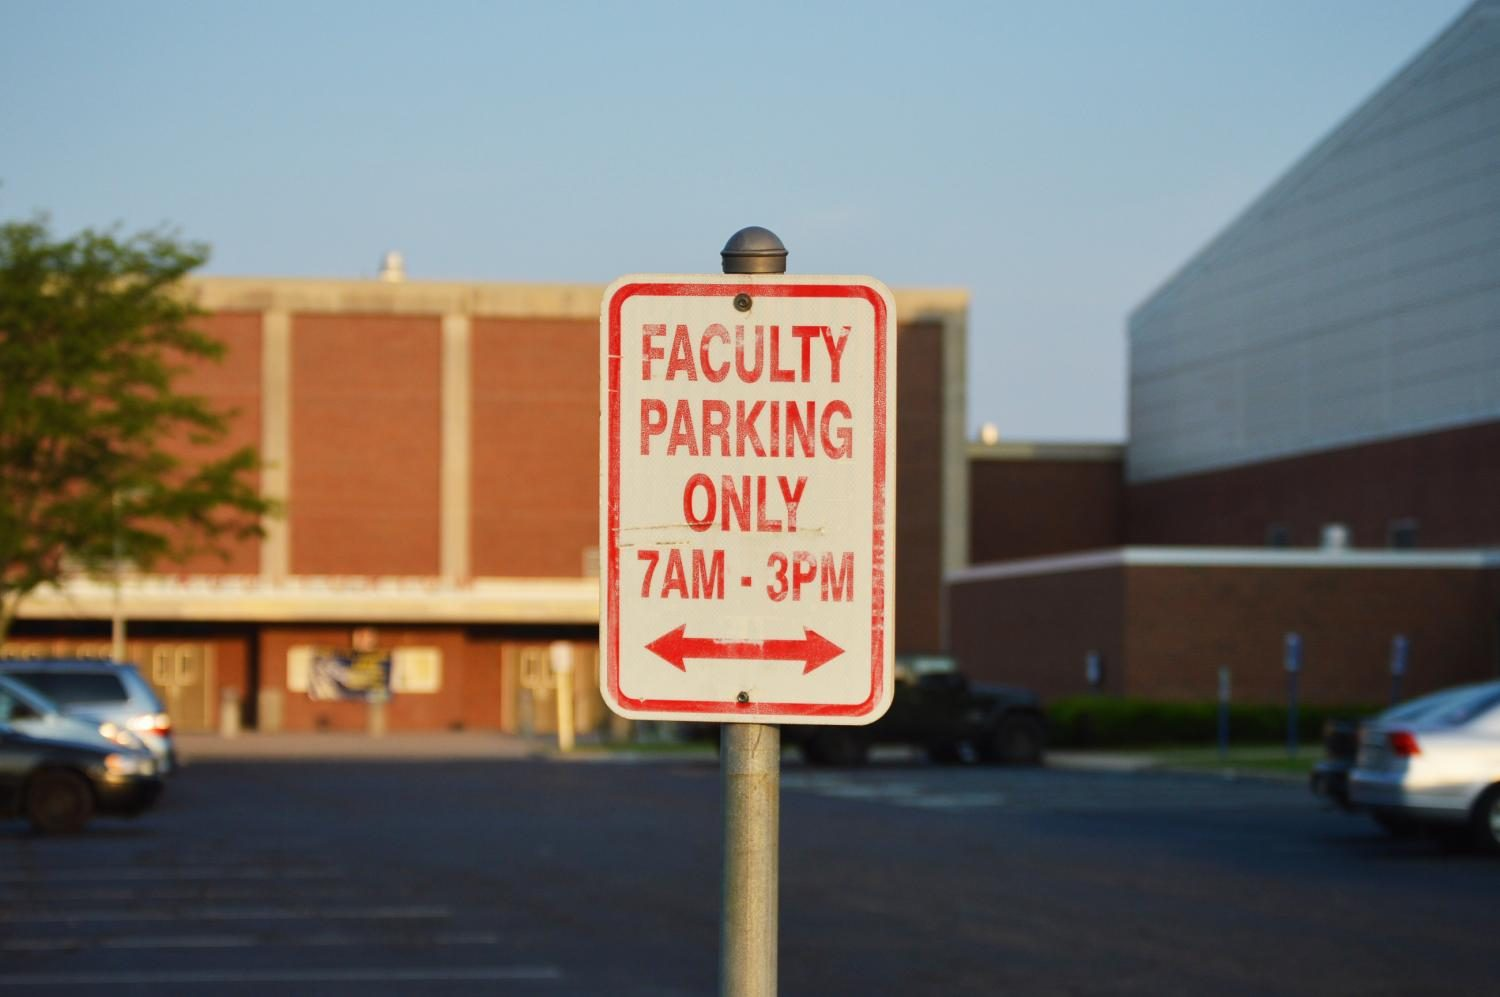 Faculty parking sign shows time and place at which only staff can park.